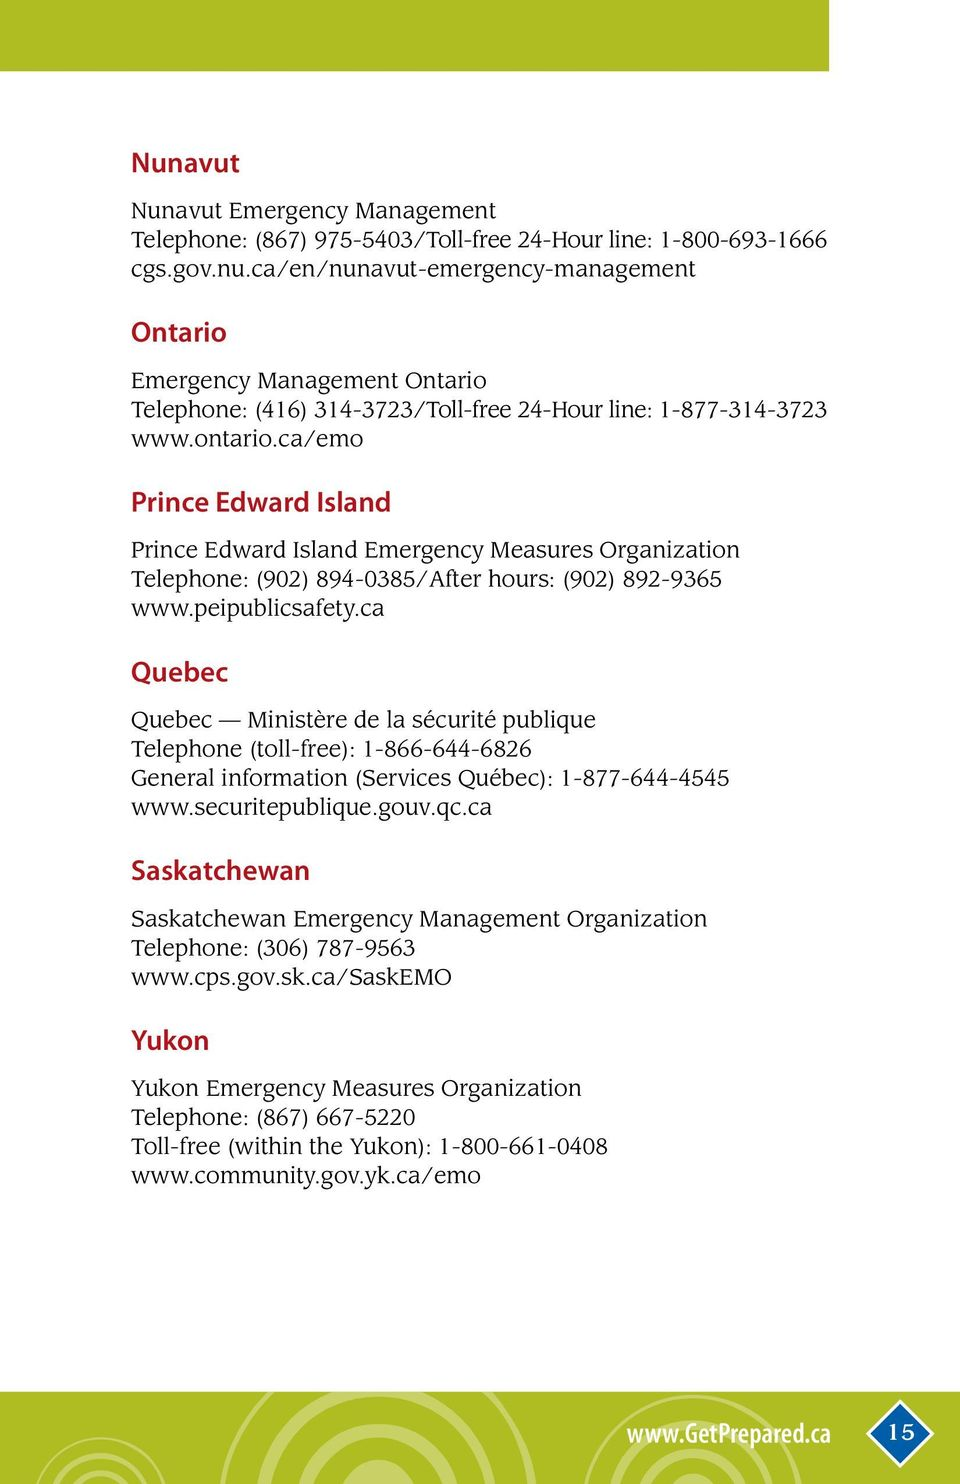 ca/emo Prince Edward Island Prince Edward Island Emergency Measures Organization Telephone: (902) 894-0385/After hours: (902) 892-9365 www.peipublicsafety.